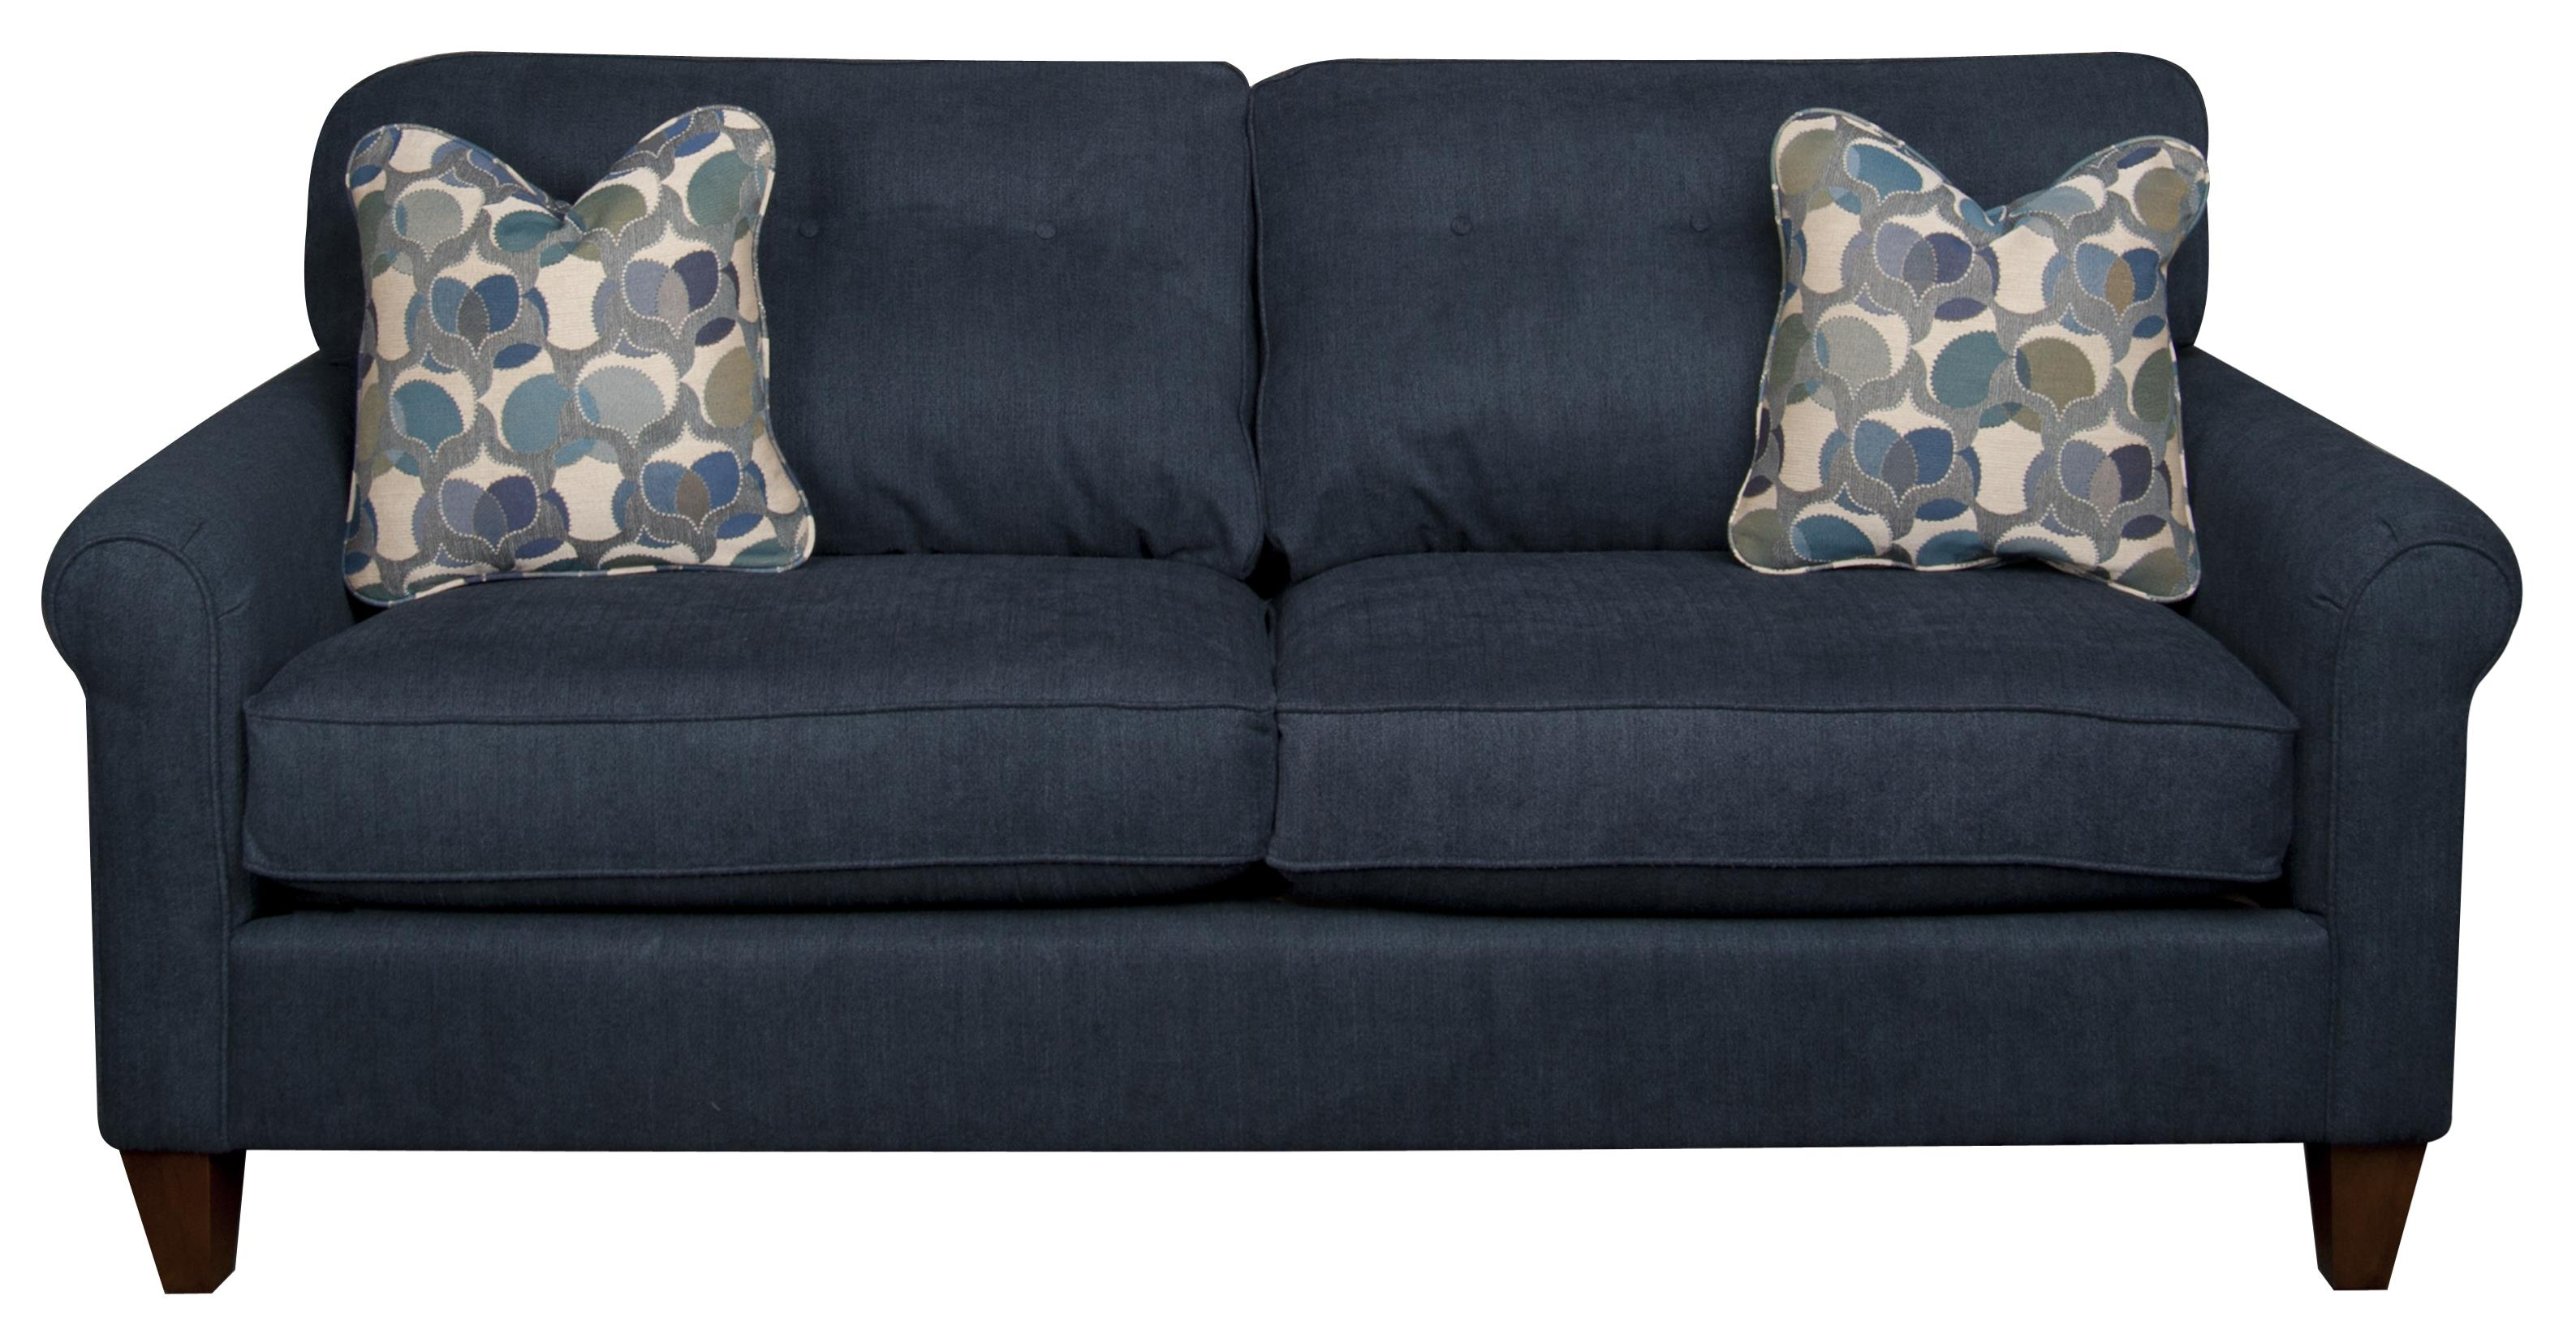 La-Z-Boy Laurel Laurel Sofa - Item Number: 566200366